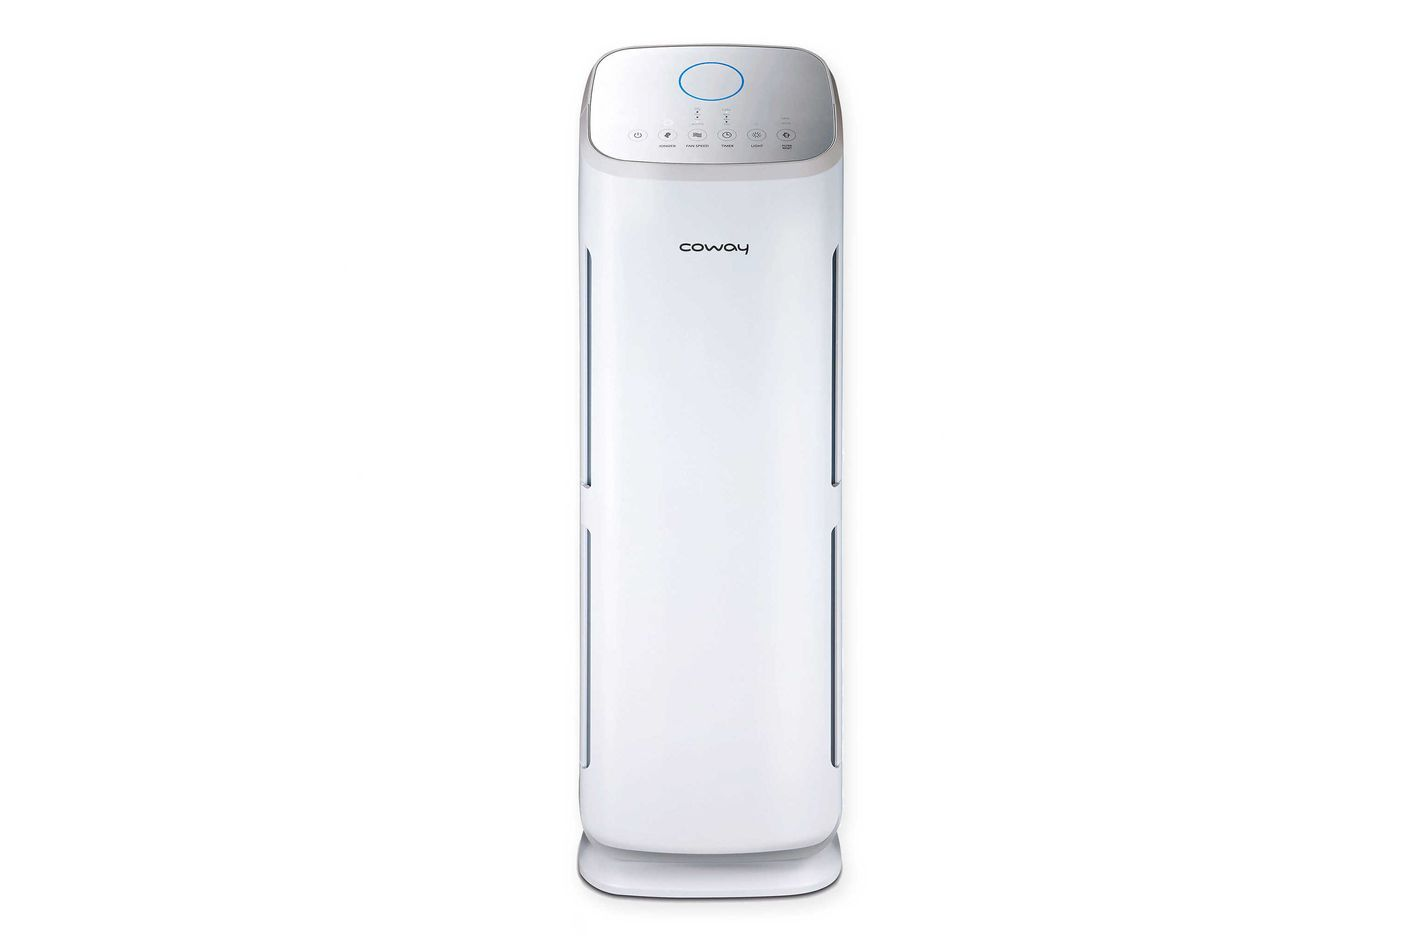 Coway Mighty Tower Air Purifier